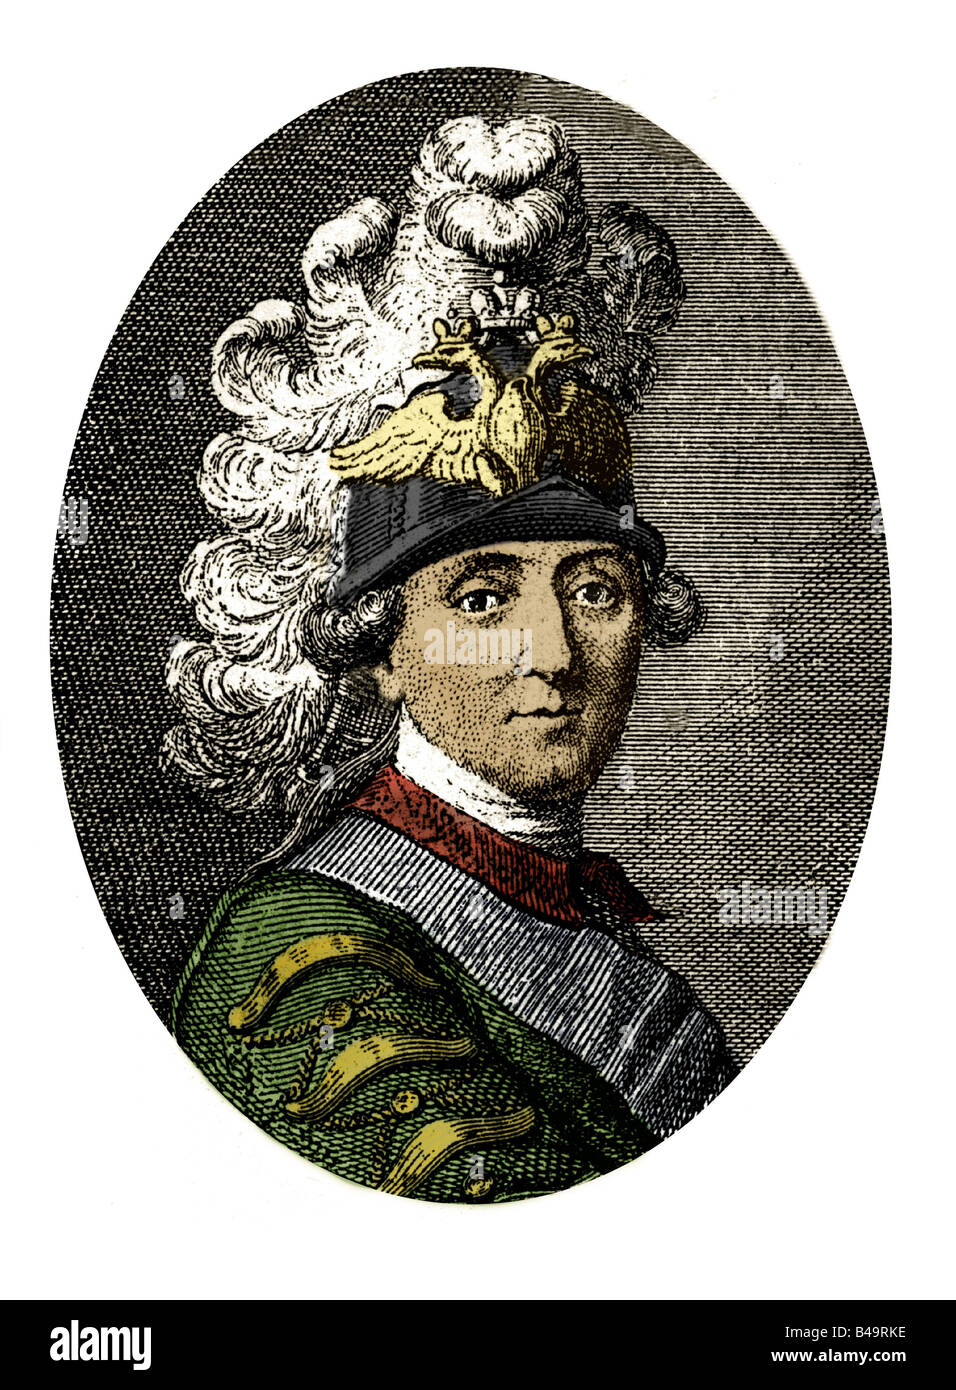 Orlov, Grigory Grigoryevich, 1737 - 5.1.1809, Russian Admiral, portrait, after contemporary engraving, 18th century, - Stock Image